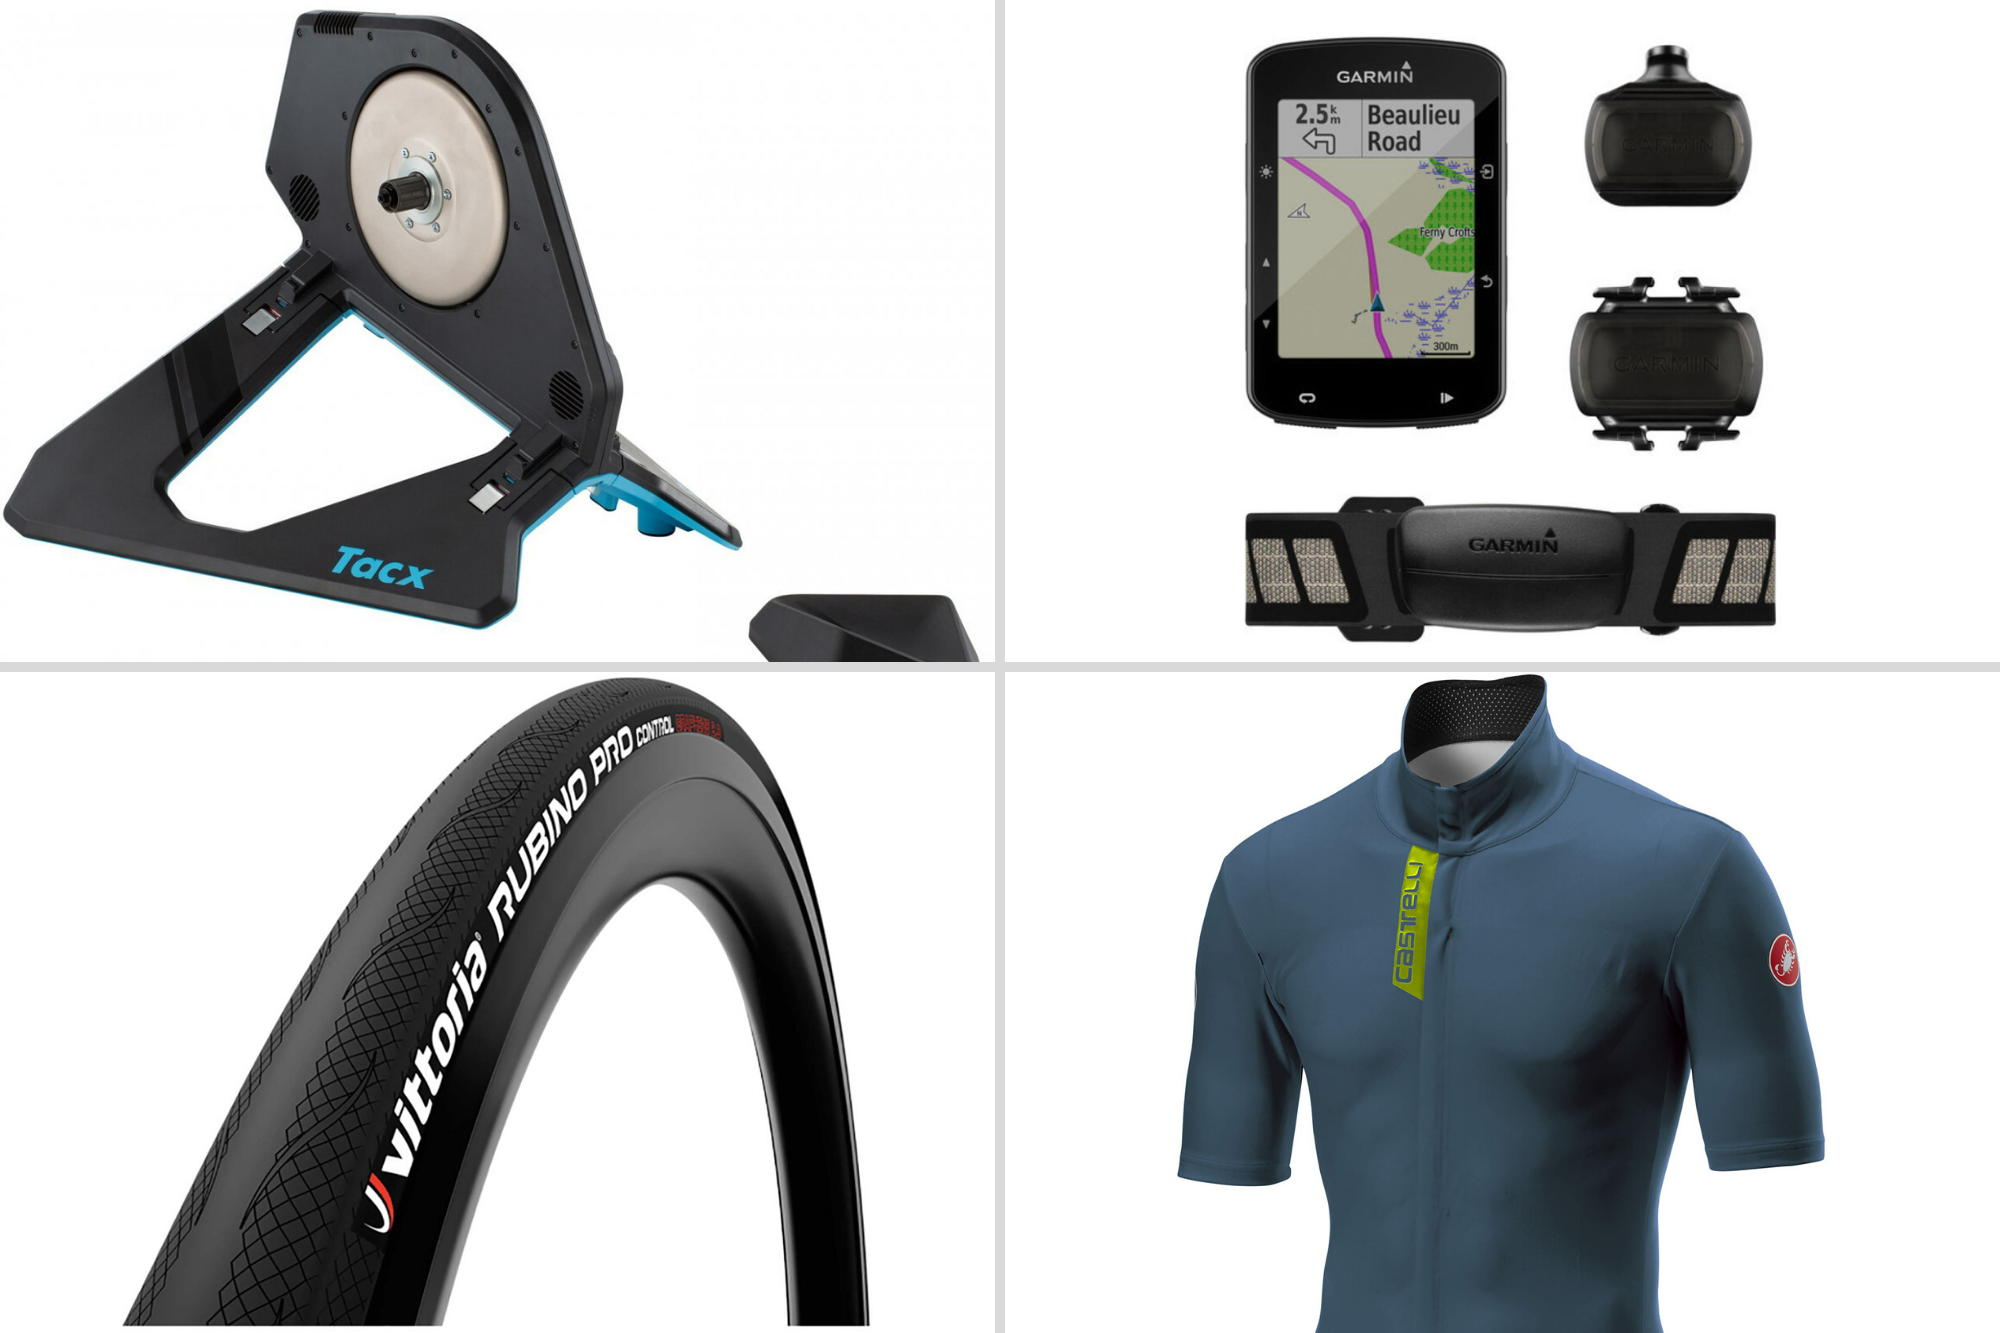 Sunday trading: Save 40% on a Garmin Edge 520 Plus and much more